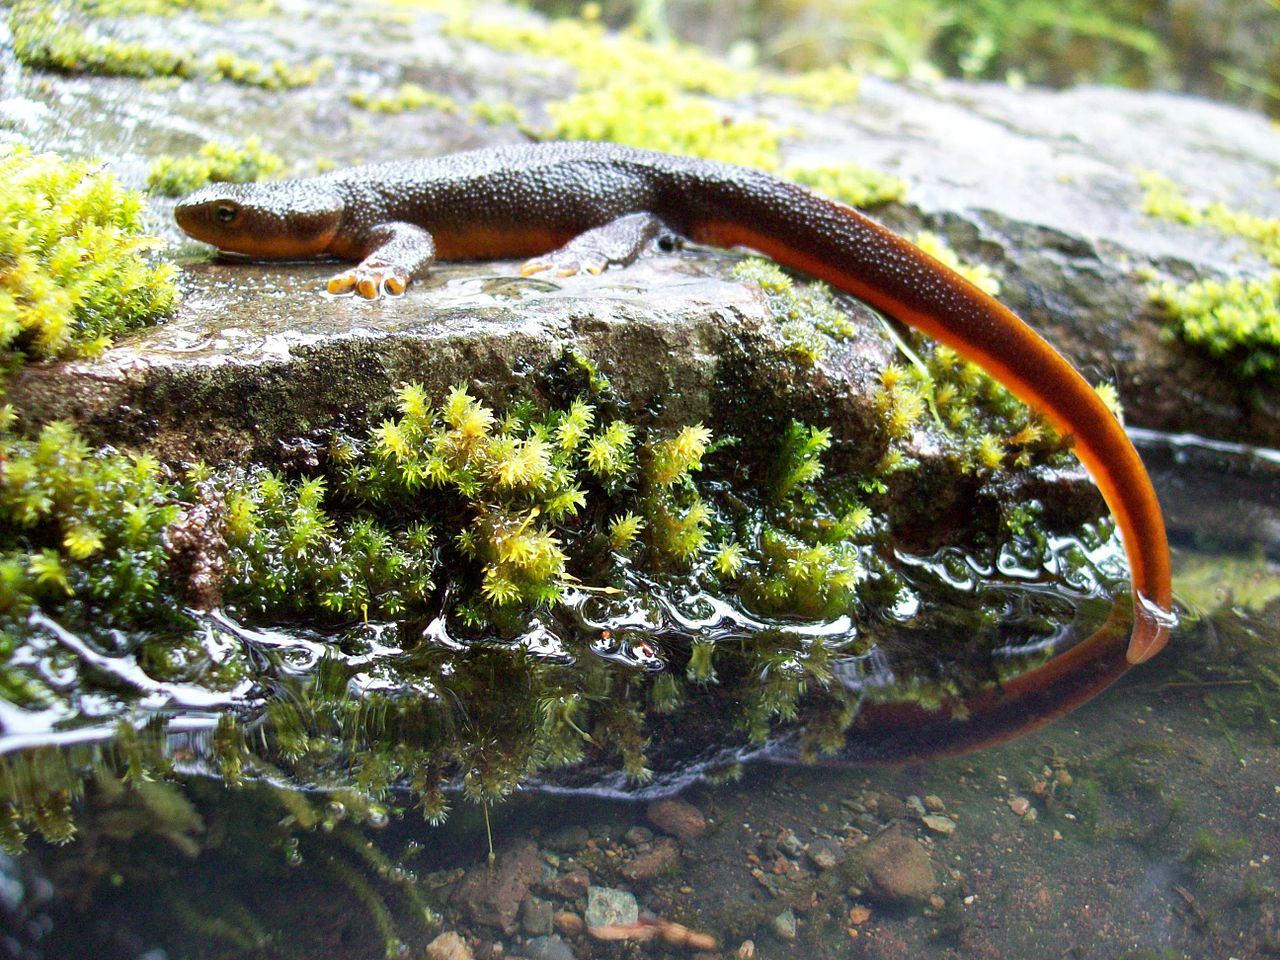 how to avoid being poisaned by a newt